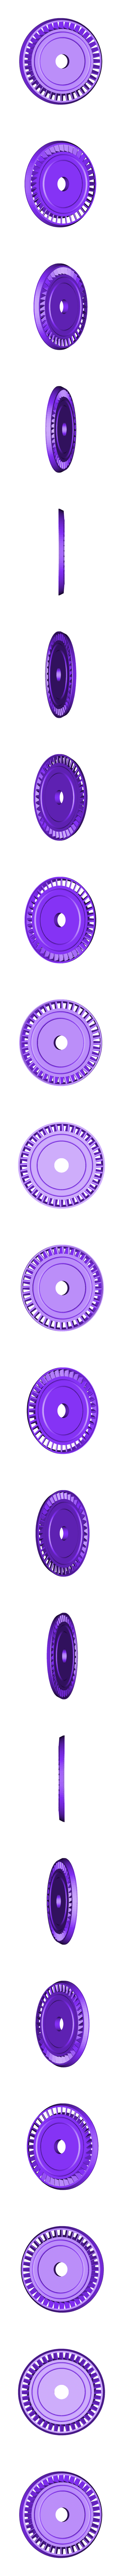 IPT-Rotor01ws.stl Download STL file Propfan Engine, Pusher Type using with Planetary Gearbox • 3D printer template, konchan77